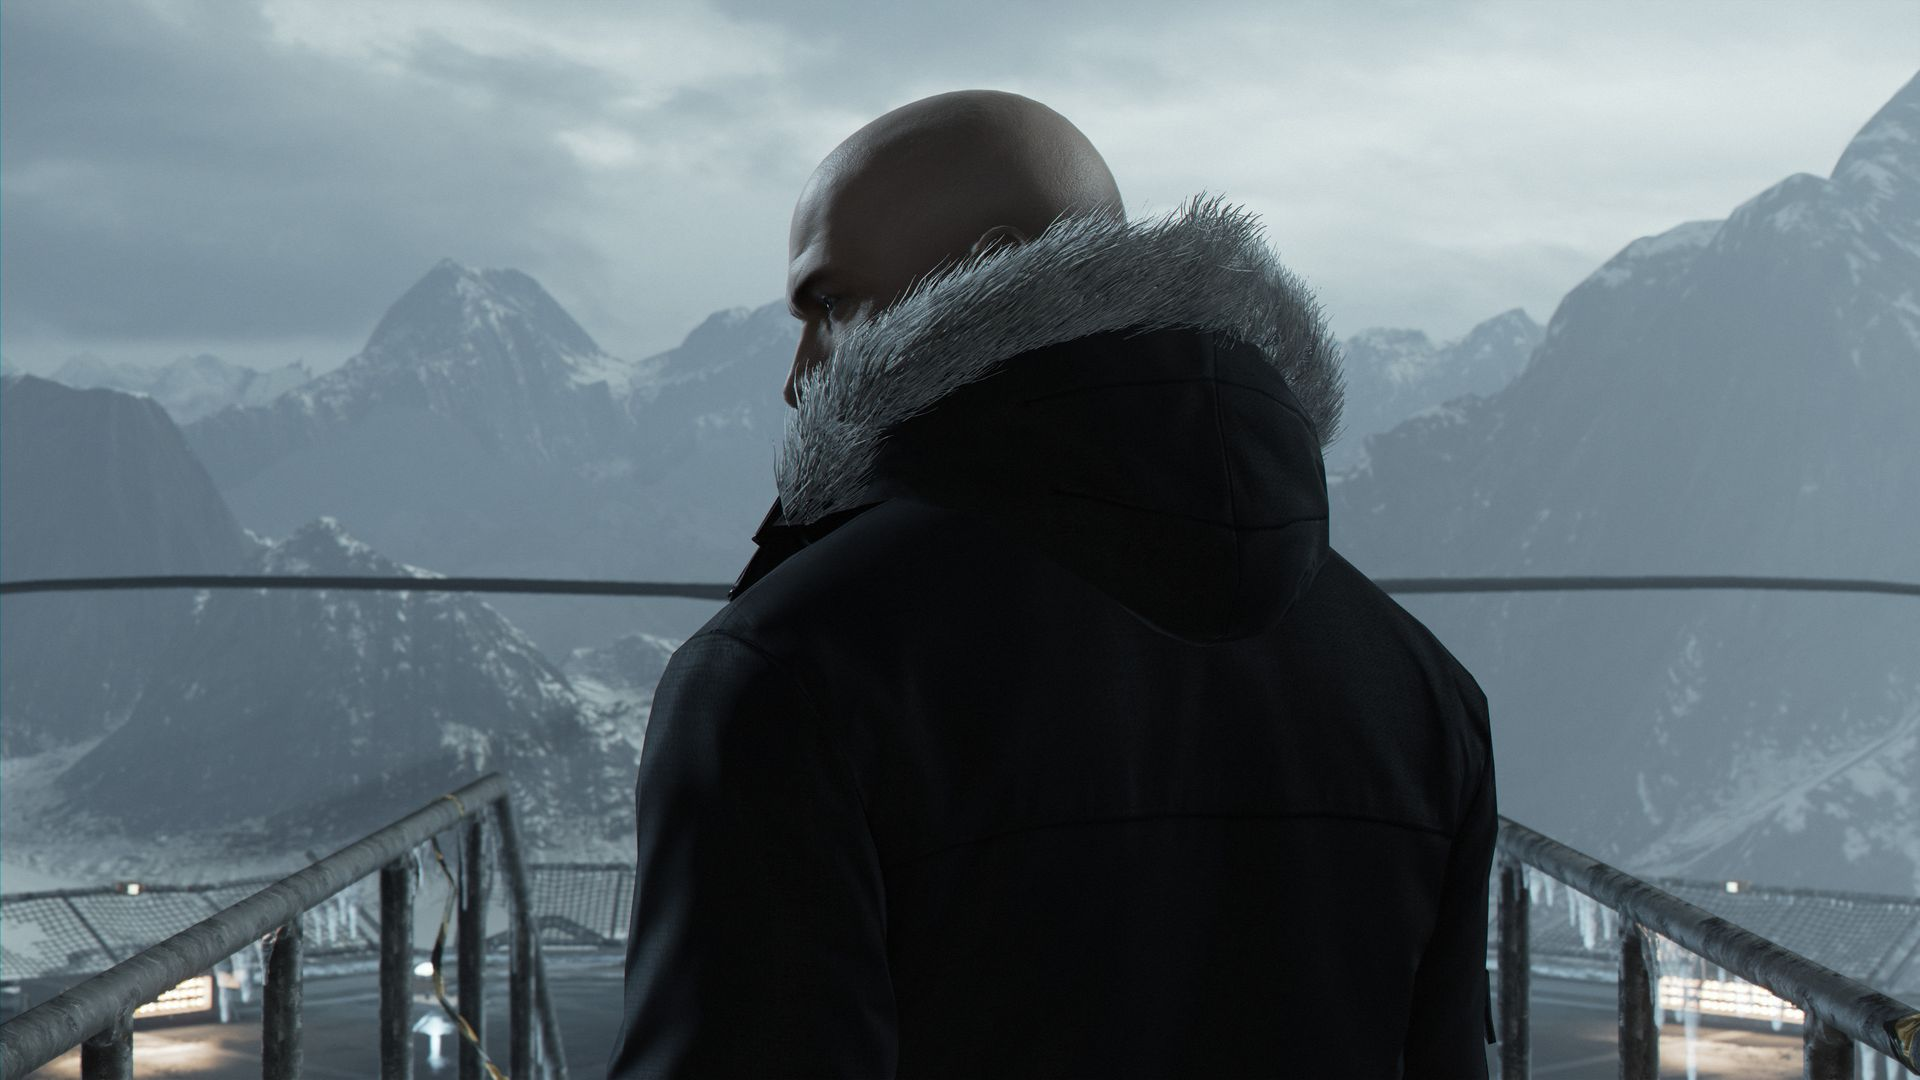 Hitman PC Errors And Fixes: Freezes, Crashes, Frame Rate Drops And More